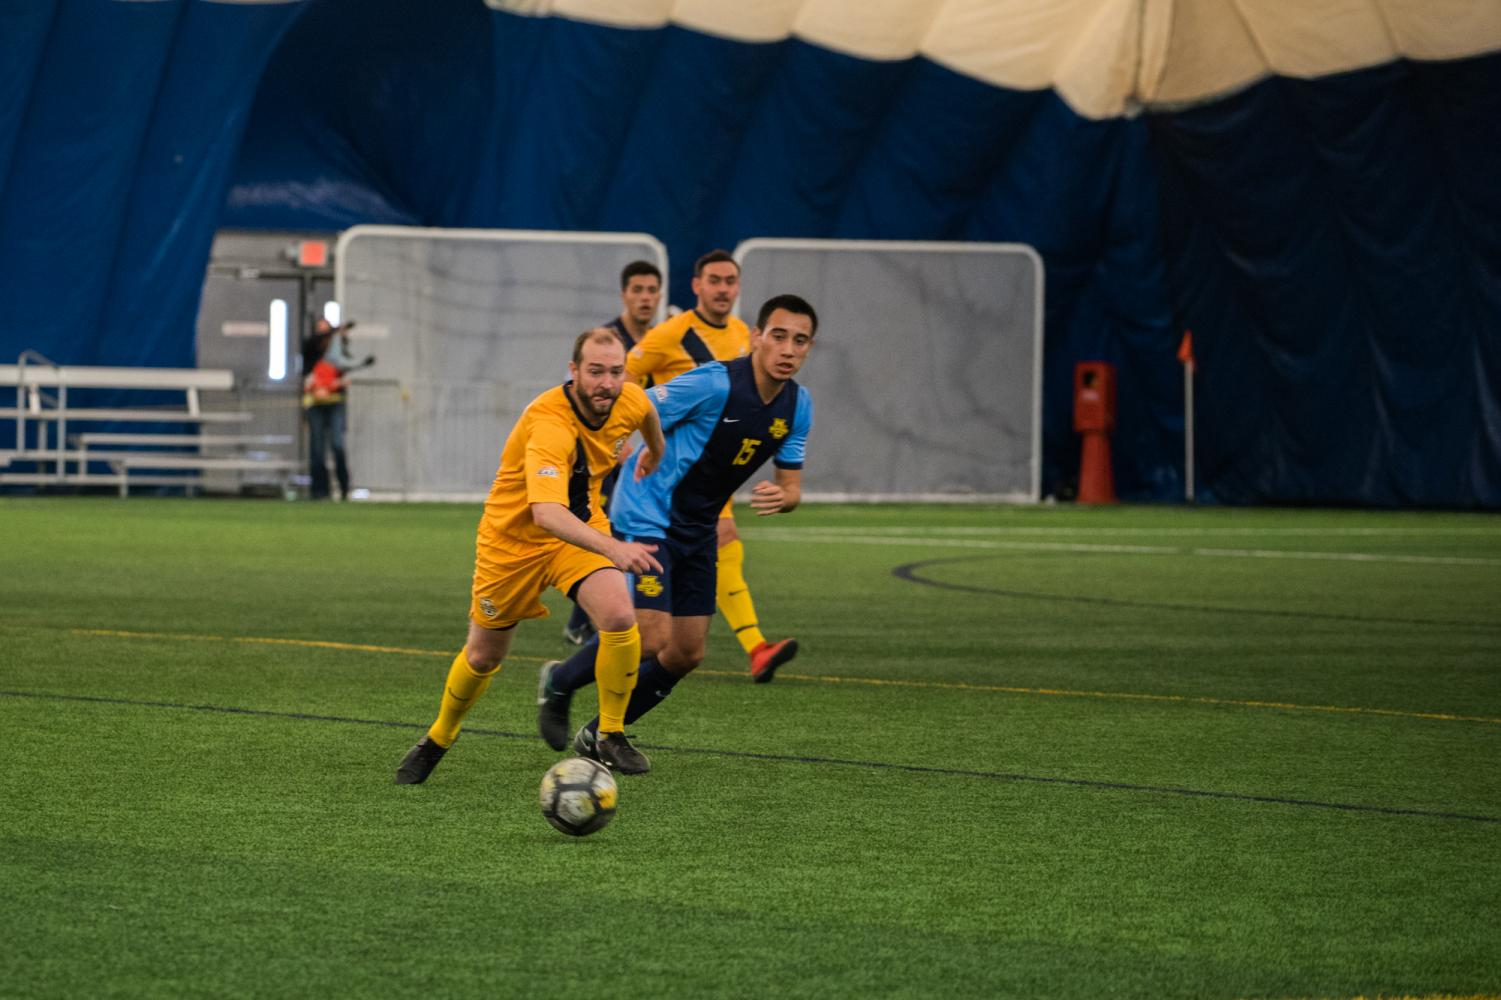 Nathan Sabich (left) goes for the ball in the men's soccer alumni game. Sabich played at Marquette from 2003 to 2006.